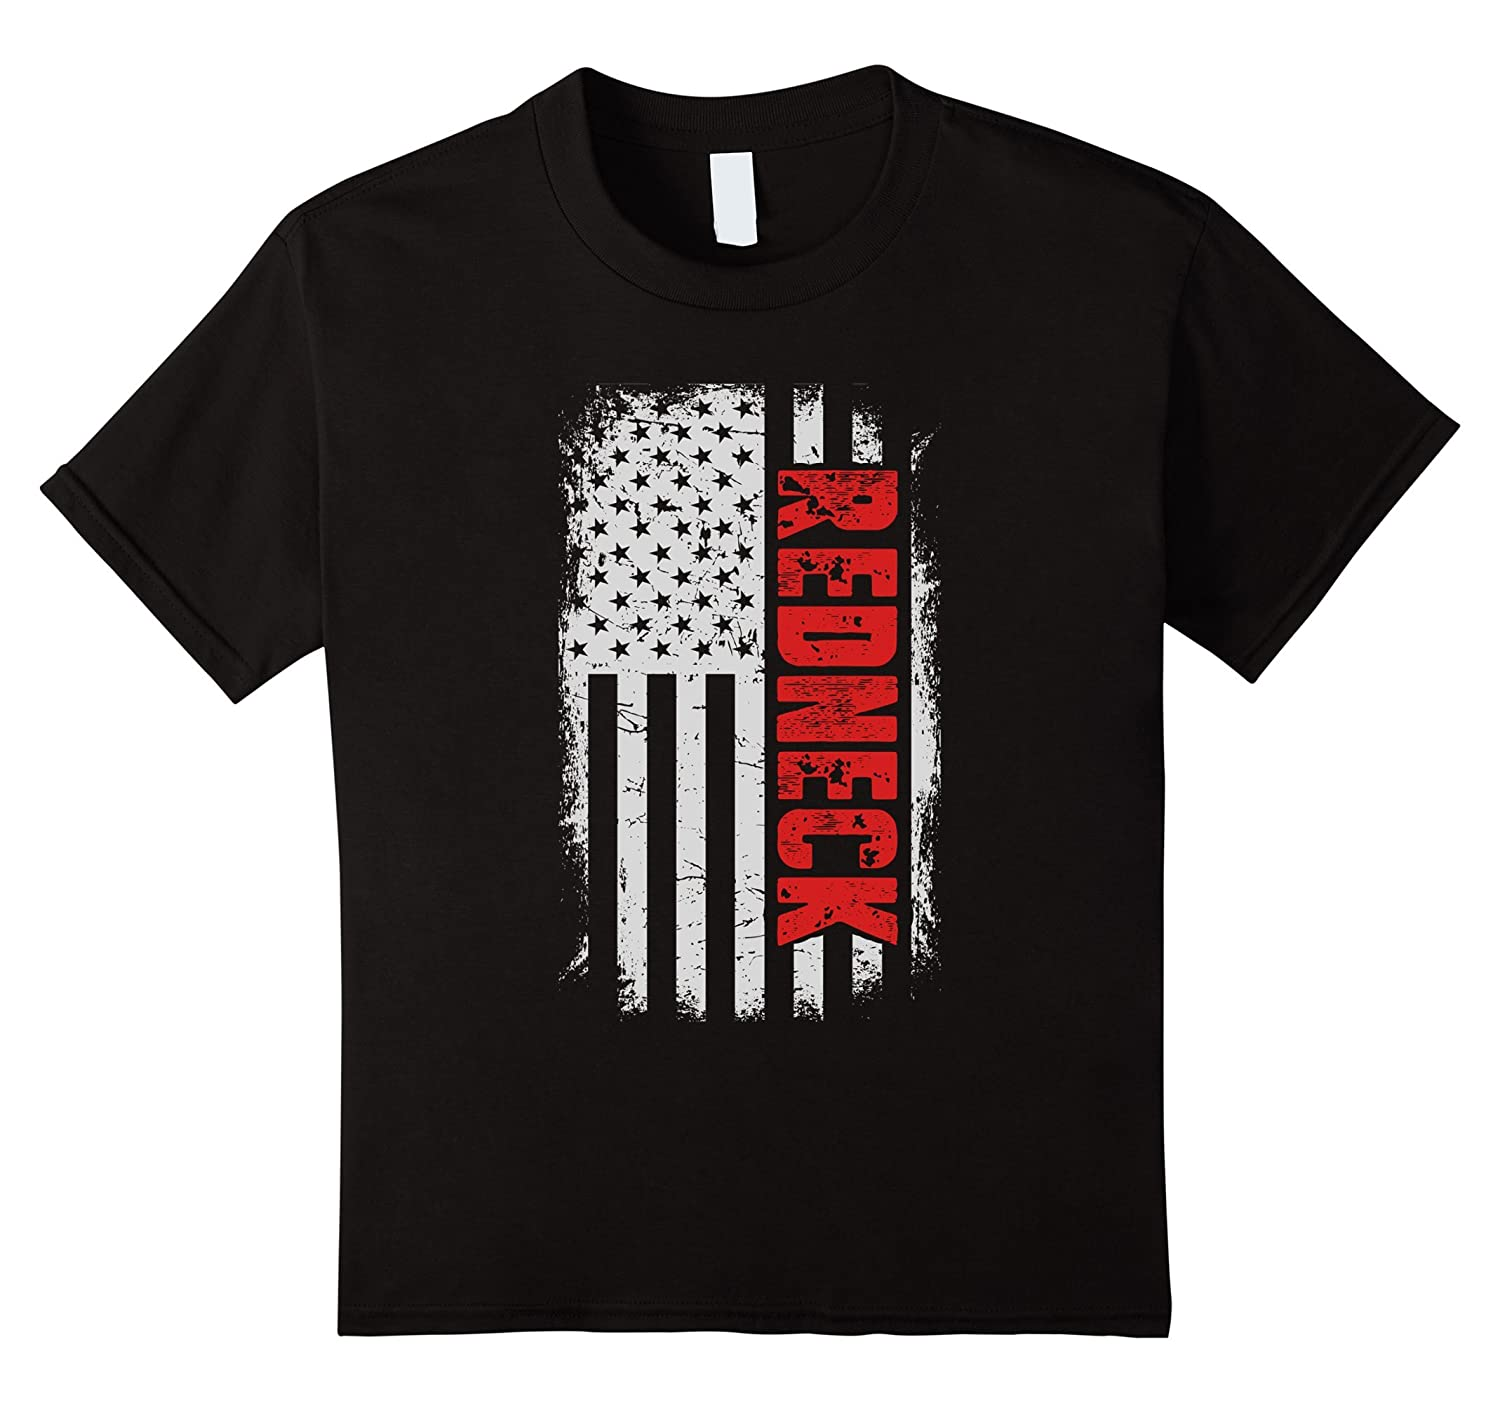 Mens Redneck American T shirt Black-Awarplus